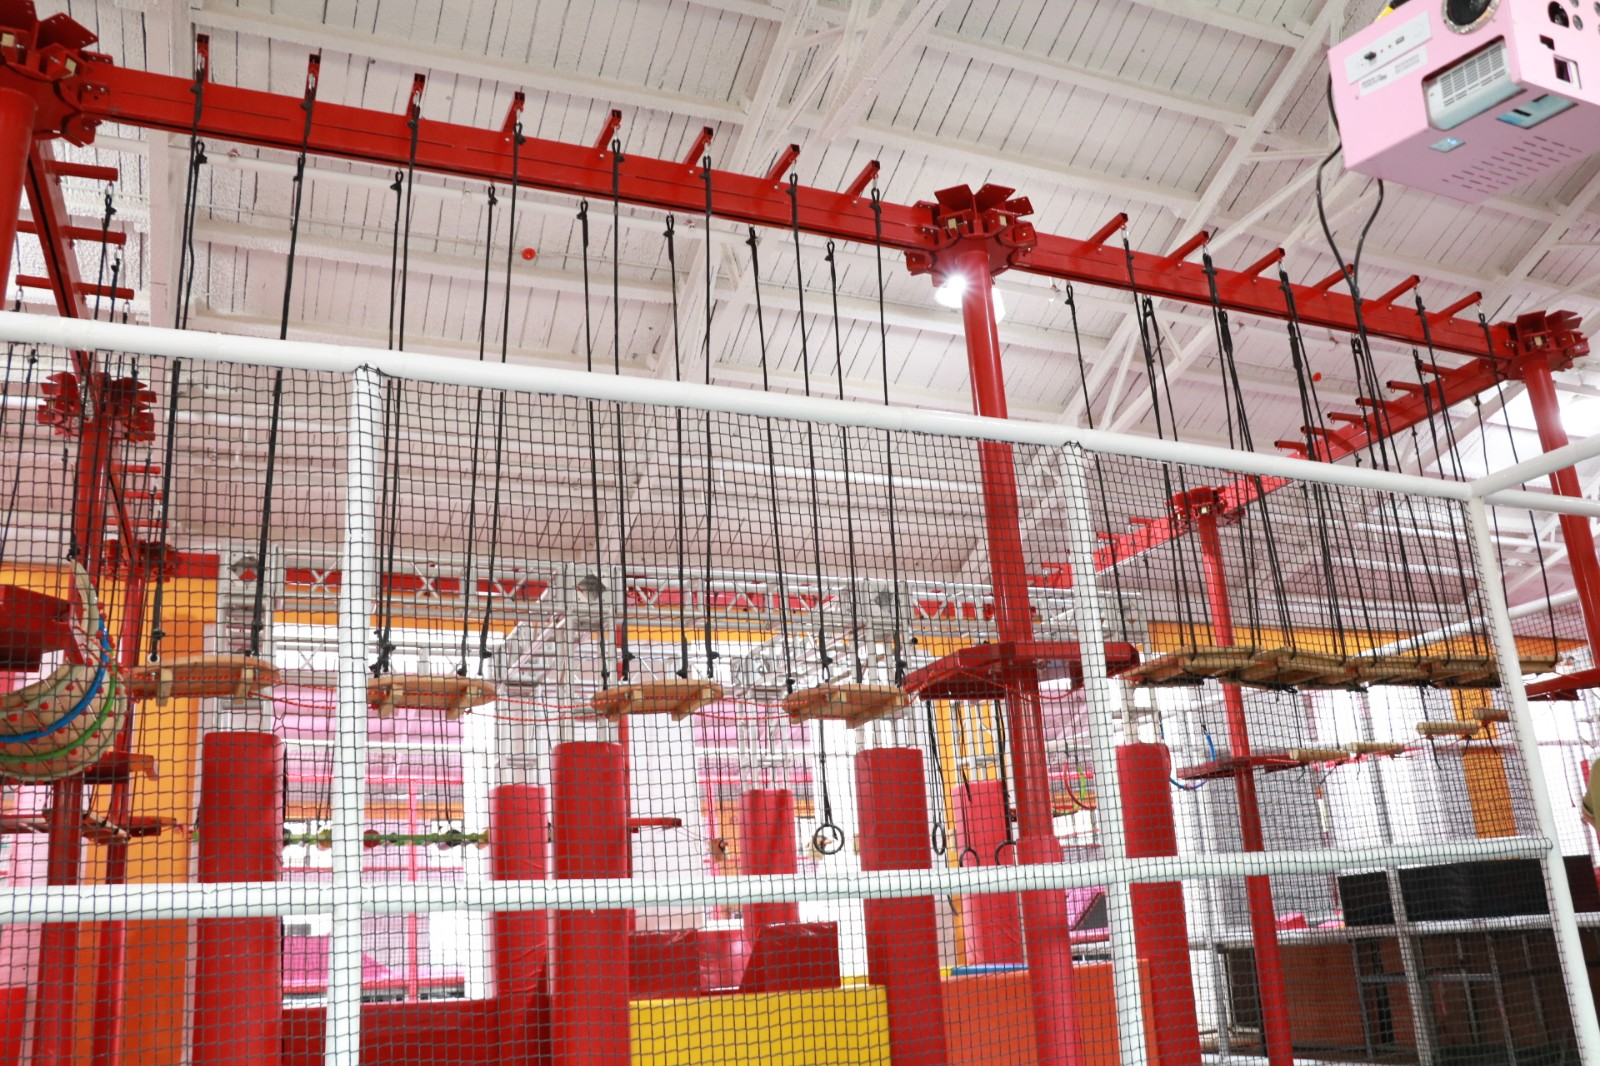 dream garden soft indoor playground equipment manufacturer